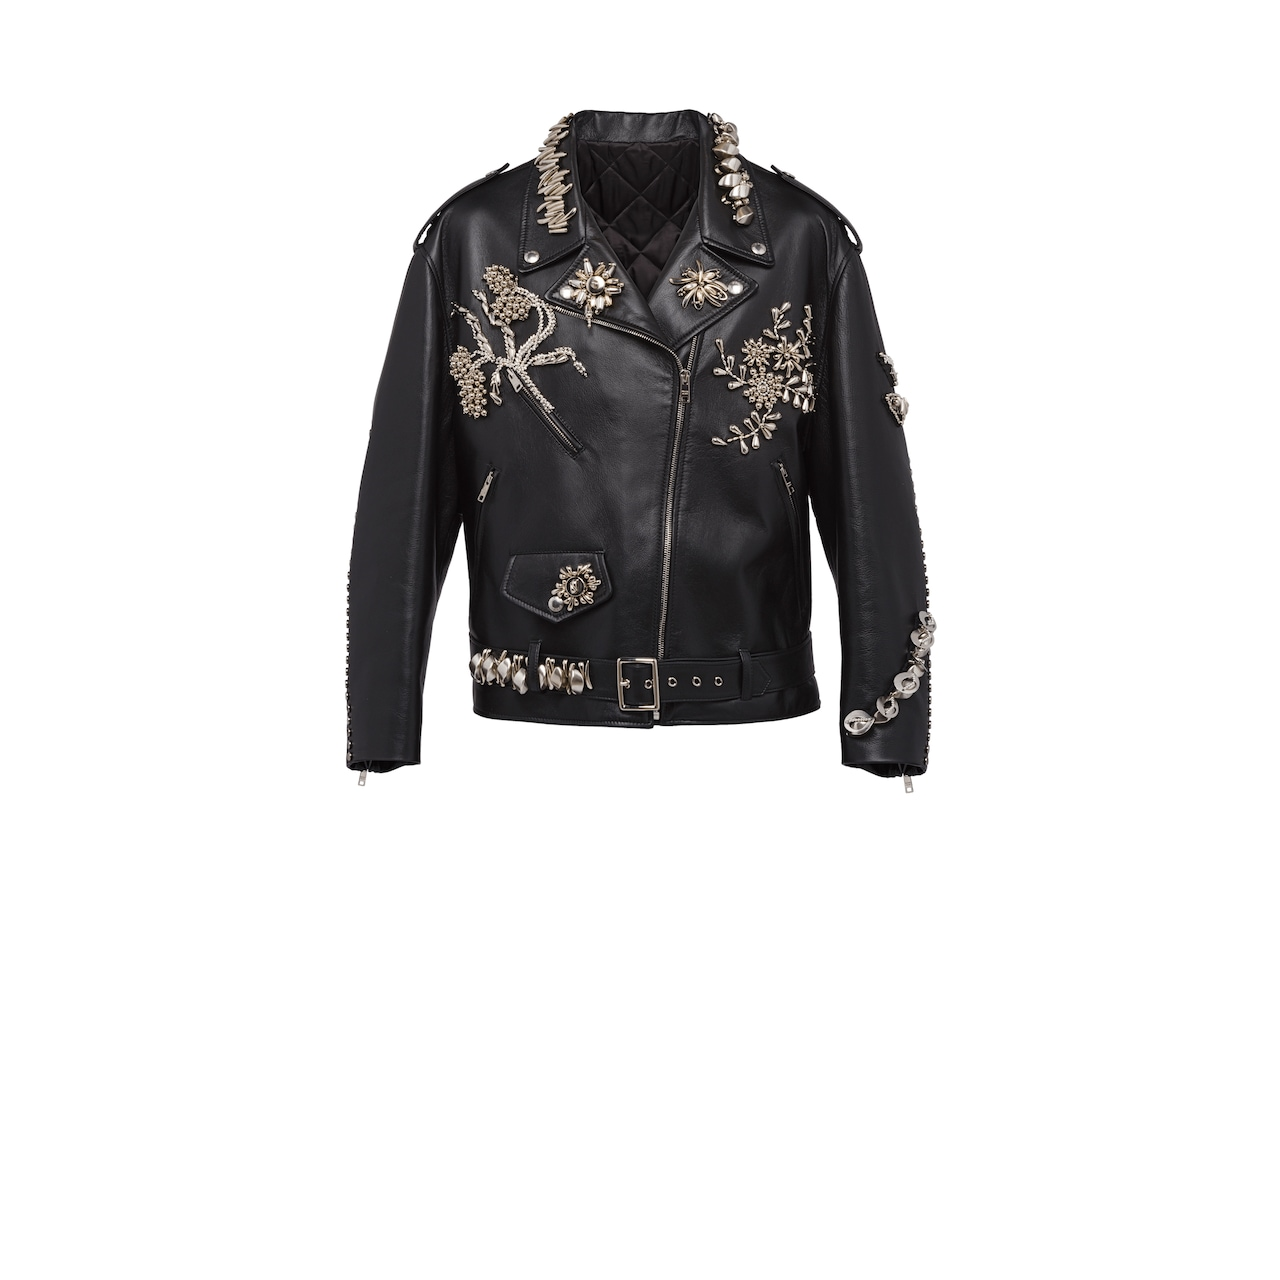 3533a2b296780 Embroidered Studded Leather Biker Jacket